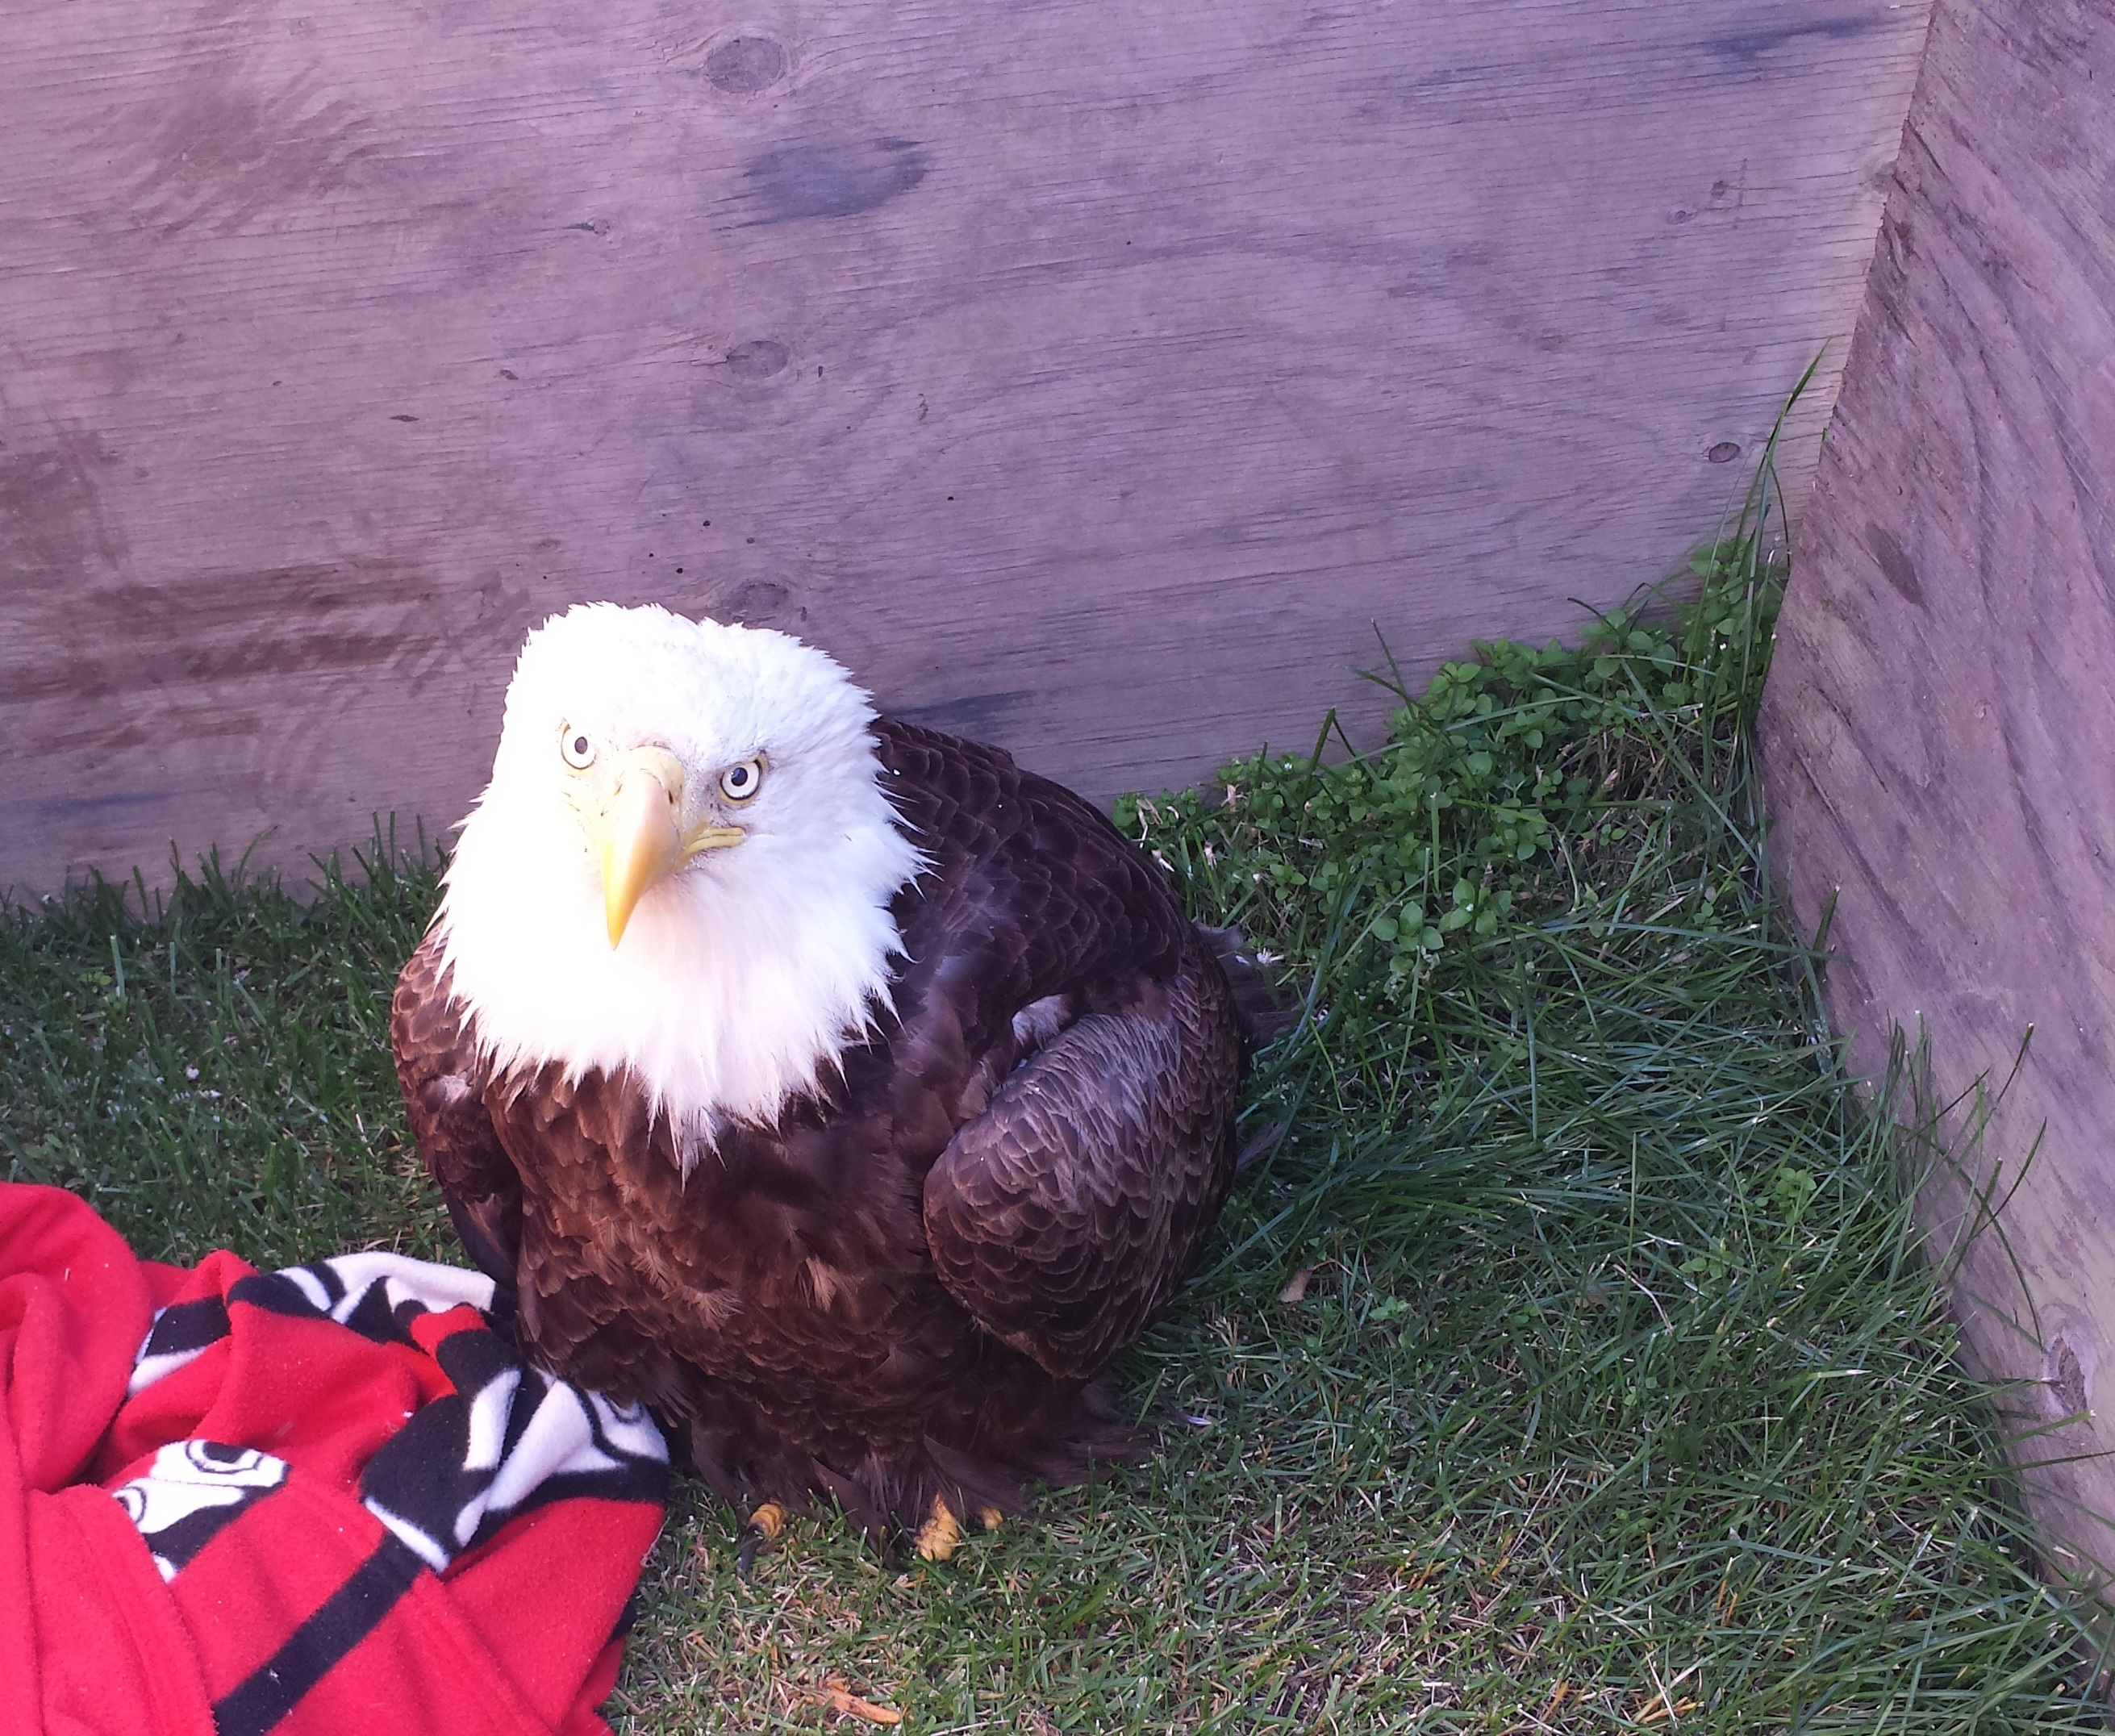 An eagle rescued near Aniak Tuesday and sent to Anchorage. (Photo by Jared Thorson)